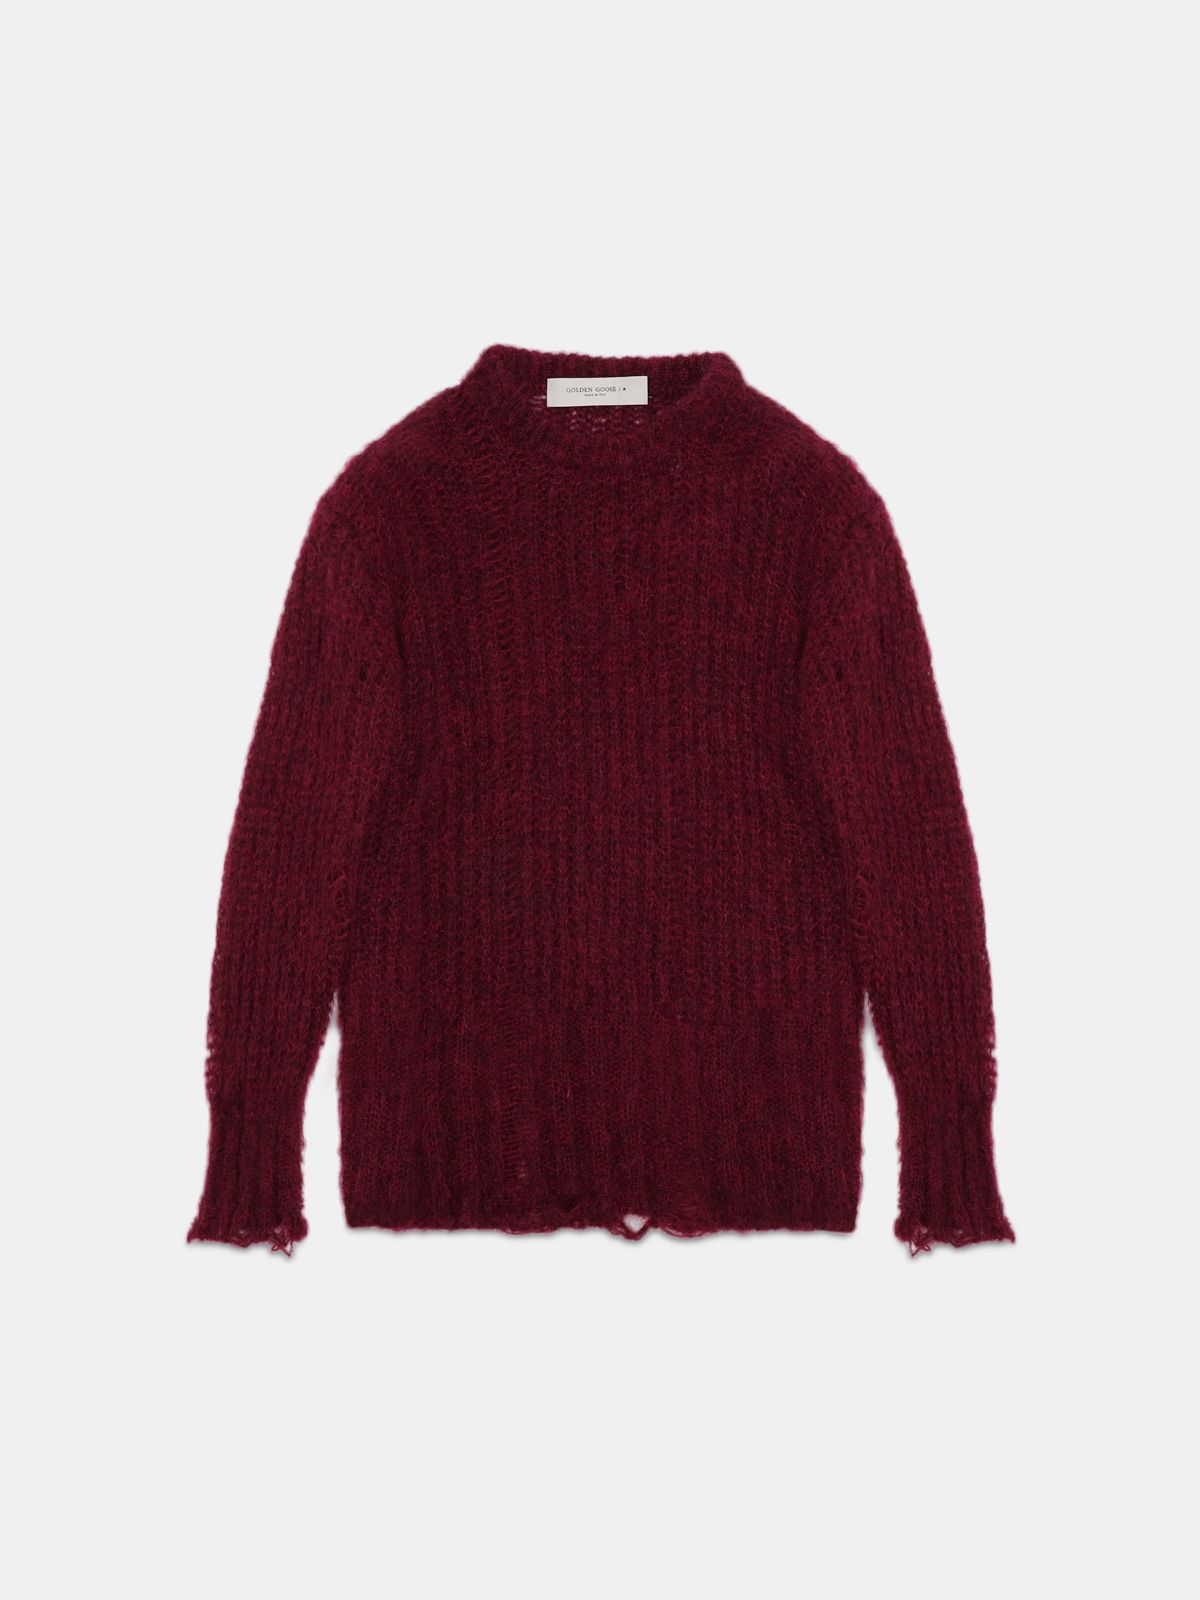 Algar sweater in burgundy mohair wool